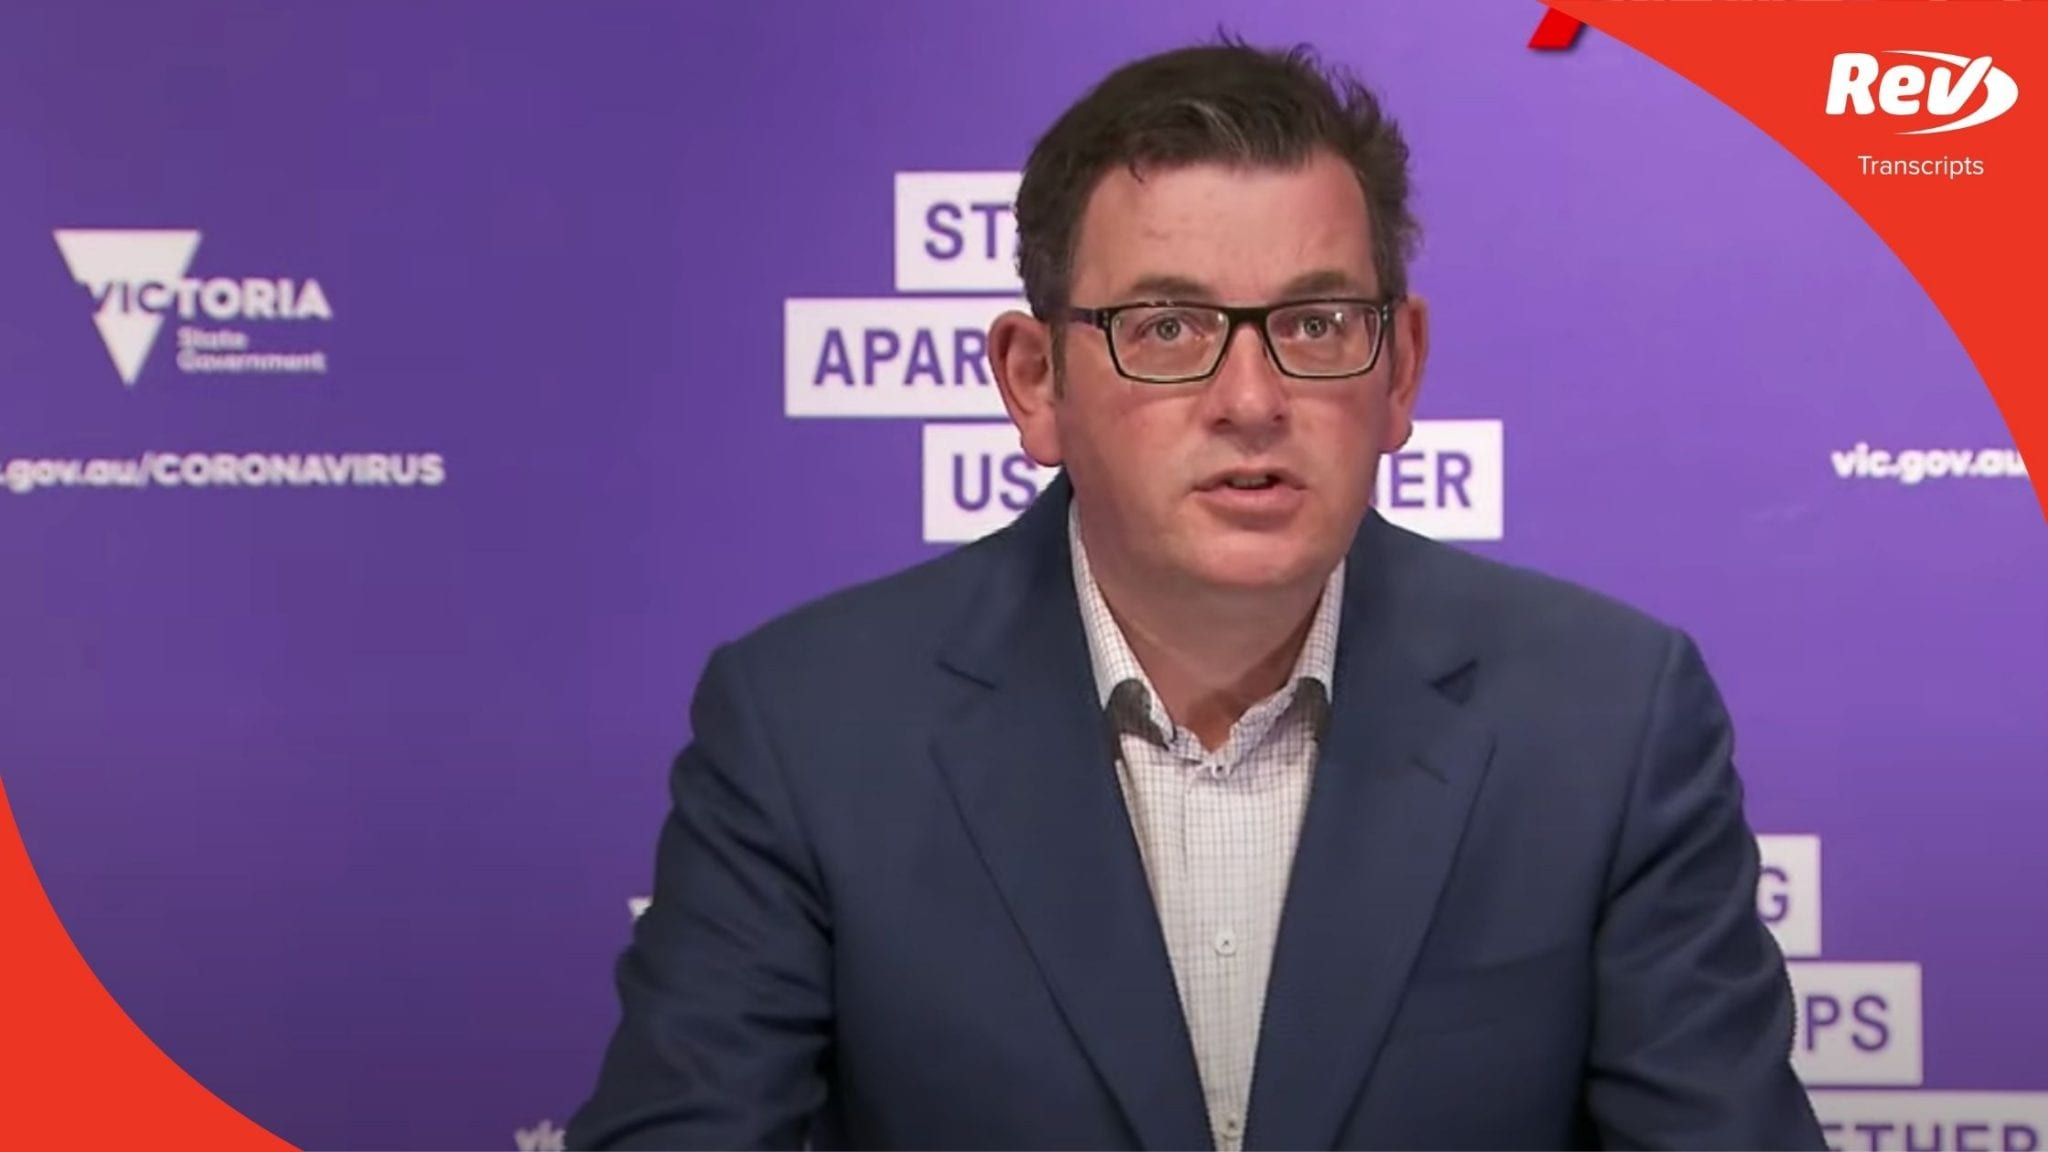 Premier Dan Andrews August 18 Press Conference